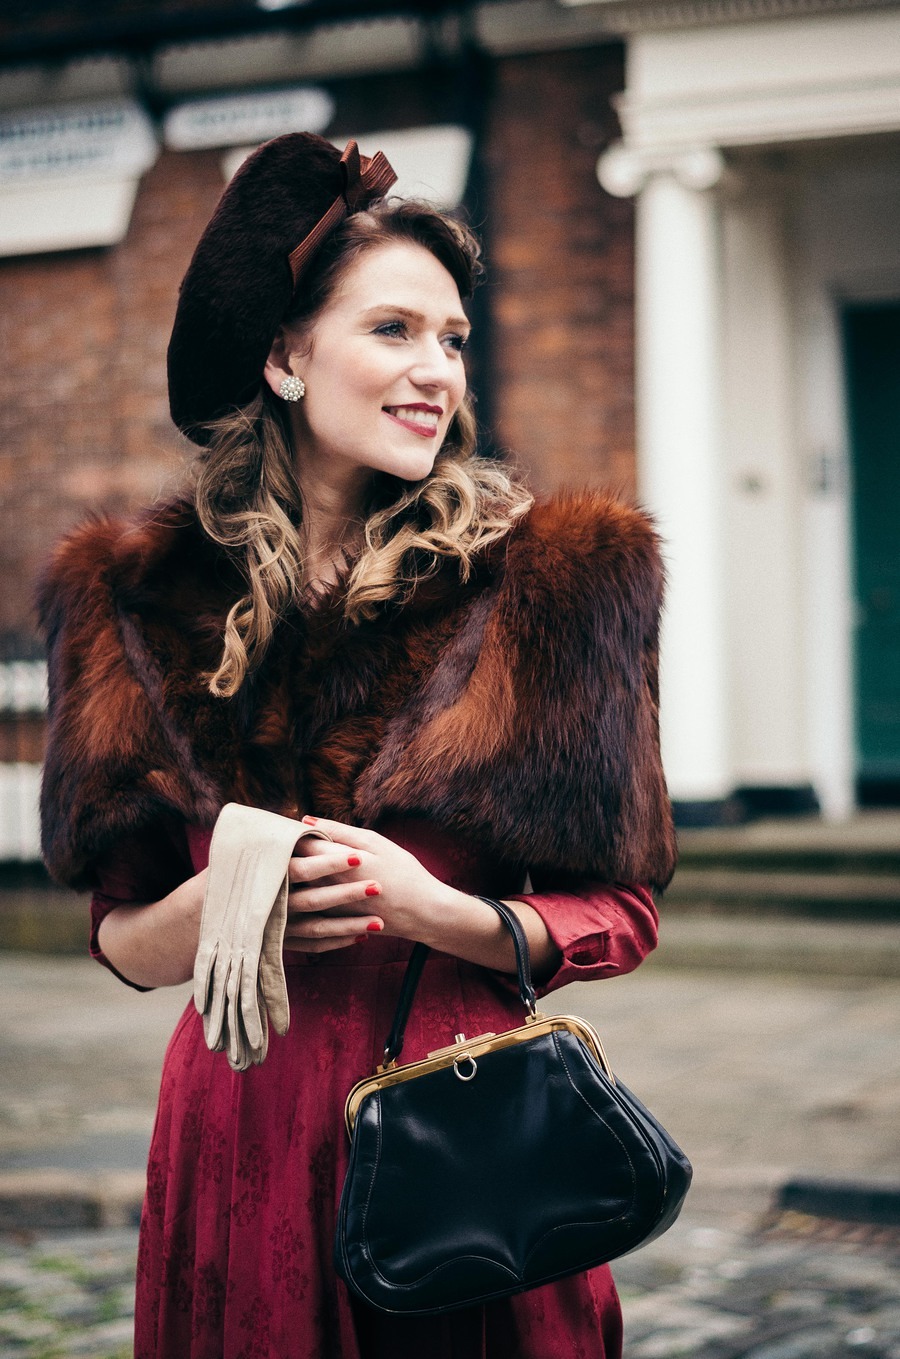 1940s street fashion / Photography by Kyle May, Assisted by CharlotteJayne / Uploaded 12th September 2016 @ 01:06 AM